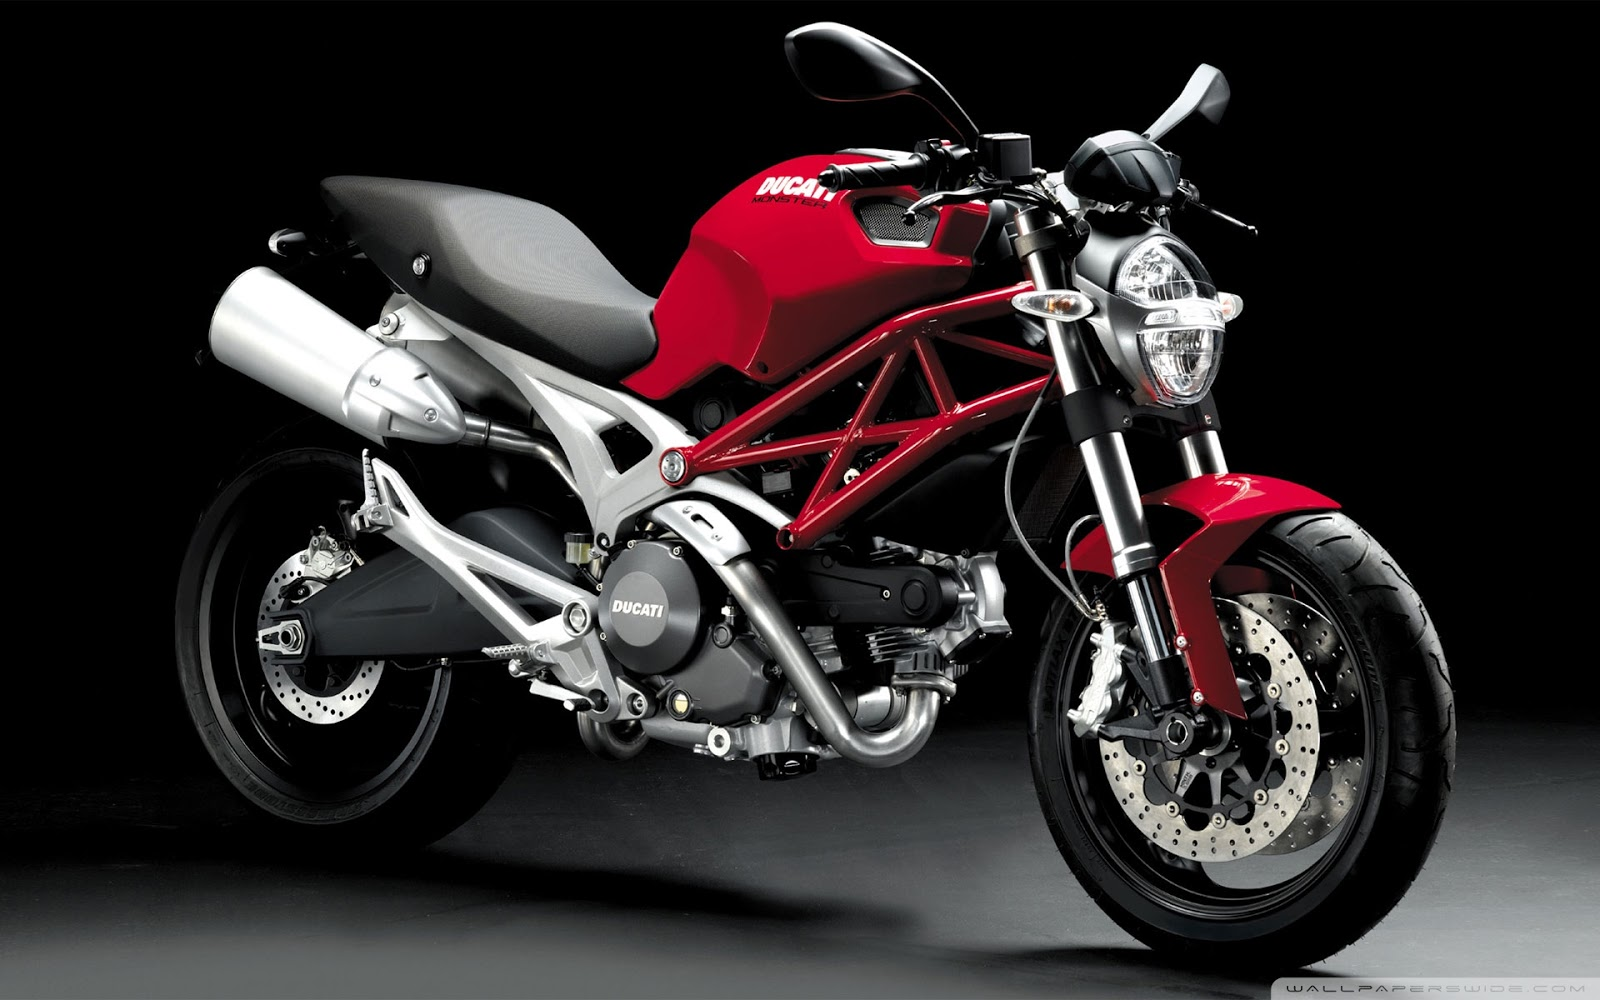 ducati monster 696 bike special. Black Bedroom Furniture Sets. Home Design Ideas